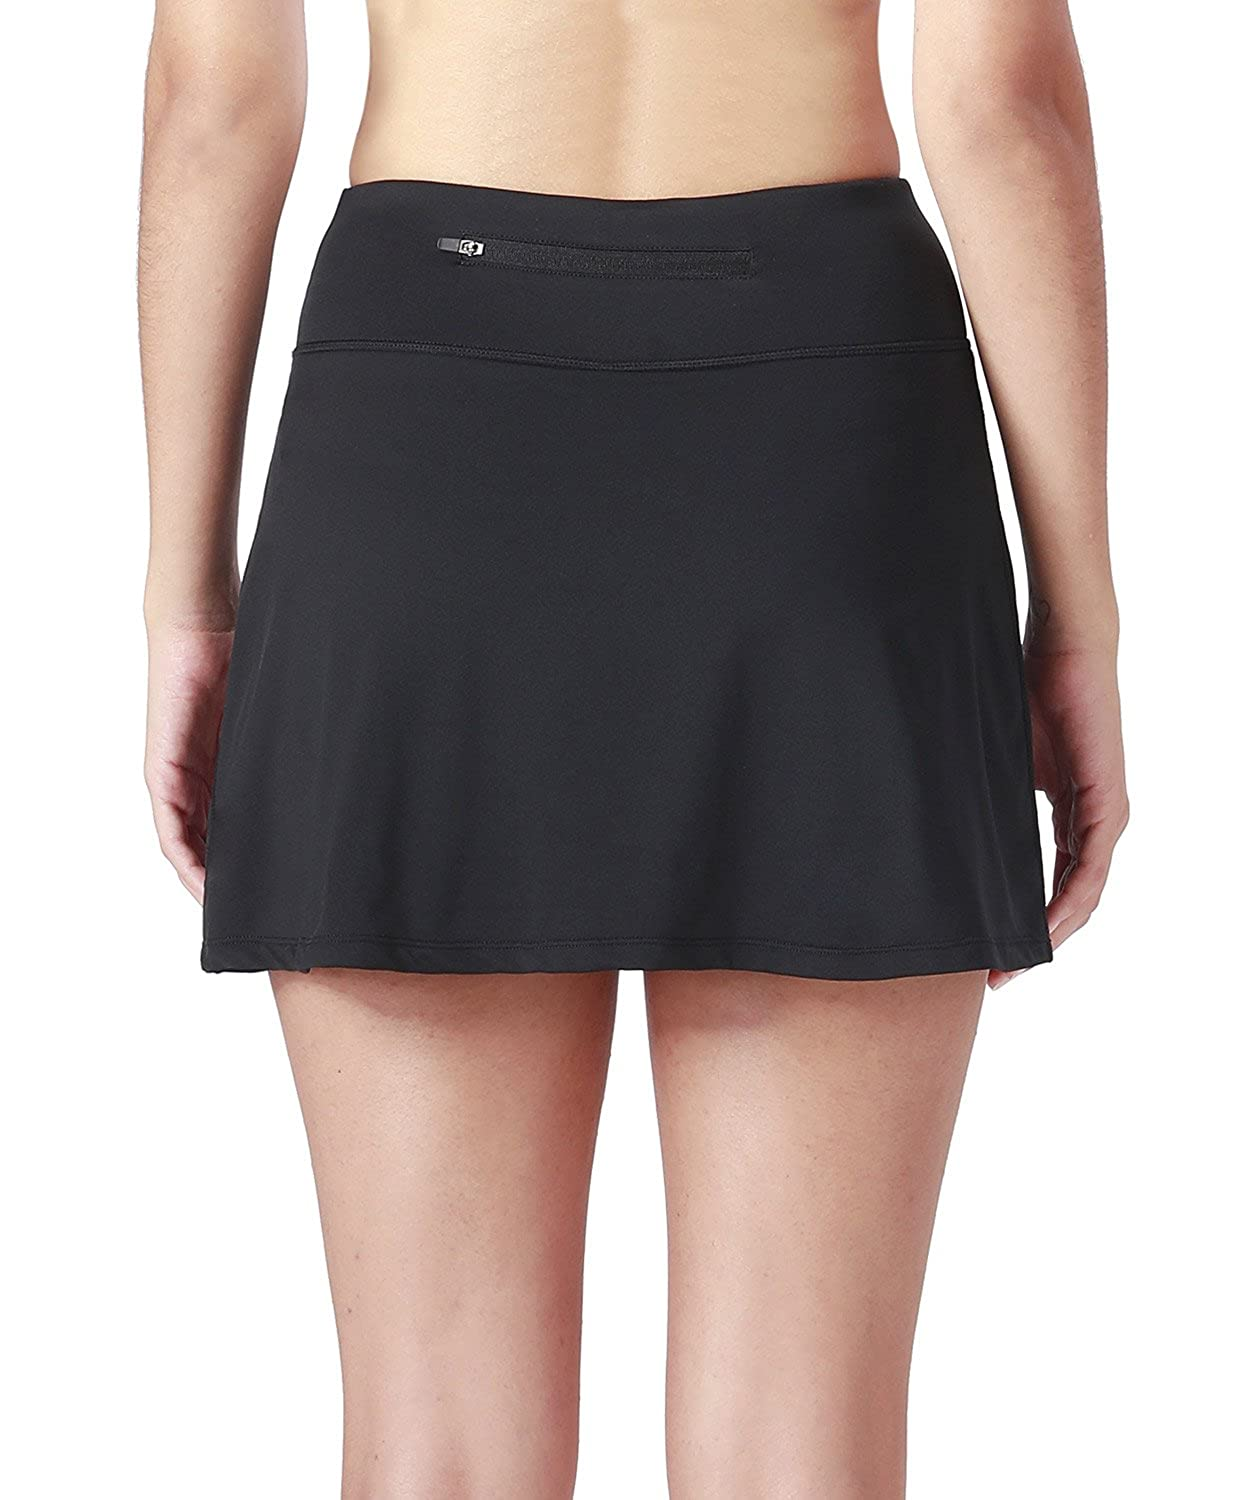 d5019fb45 Amazon.com: Naviskin Women's Active Athletic Skort Lightweight Skirt with  Pockets Inner Shorts Perfect for Running Golf Tennis Casual Use: Clothing